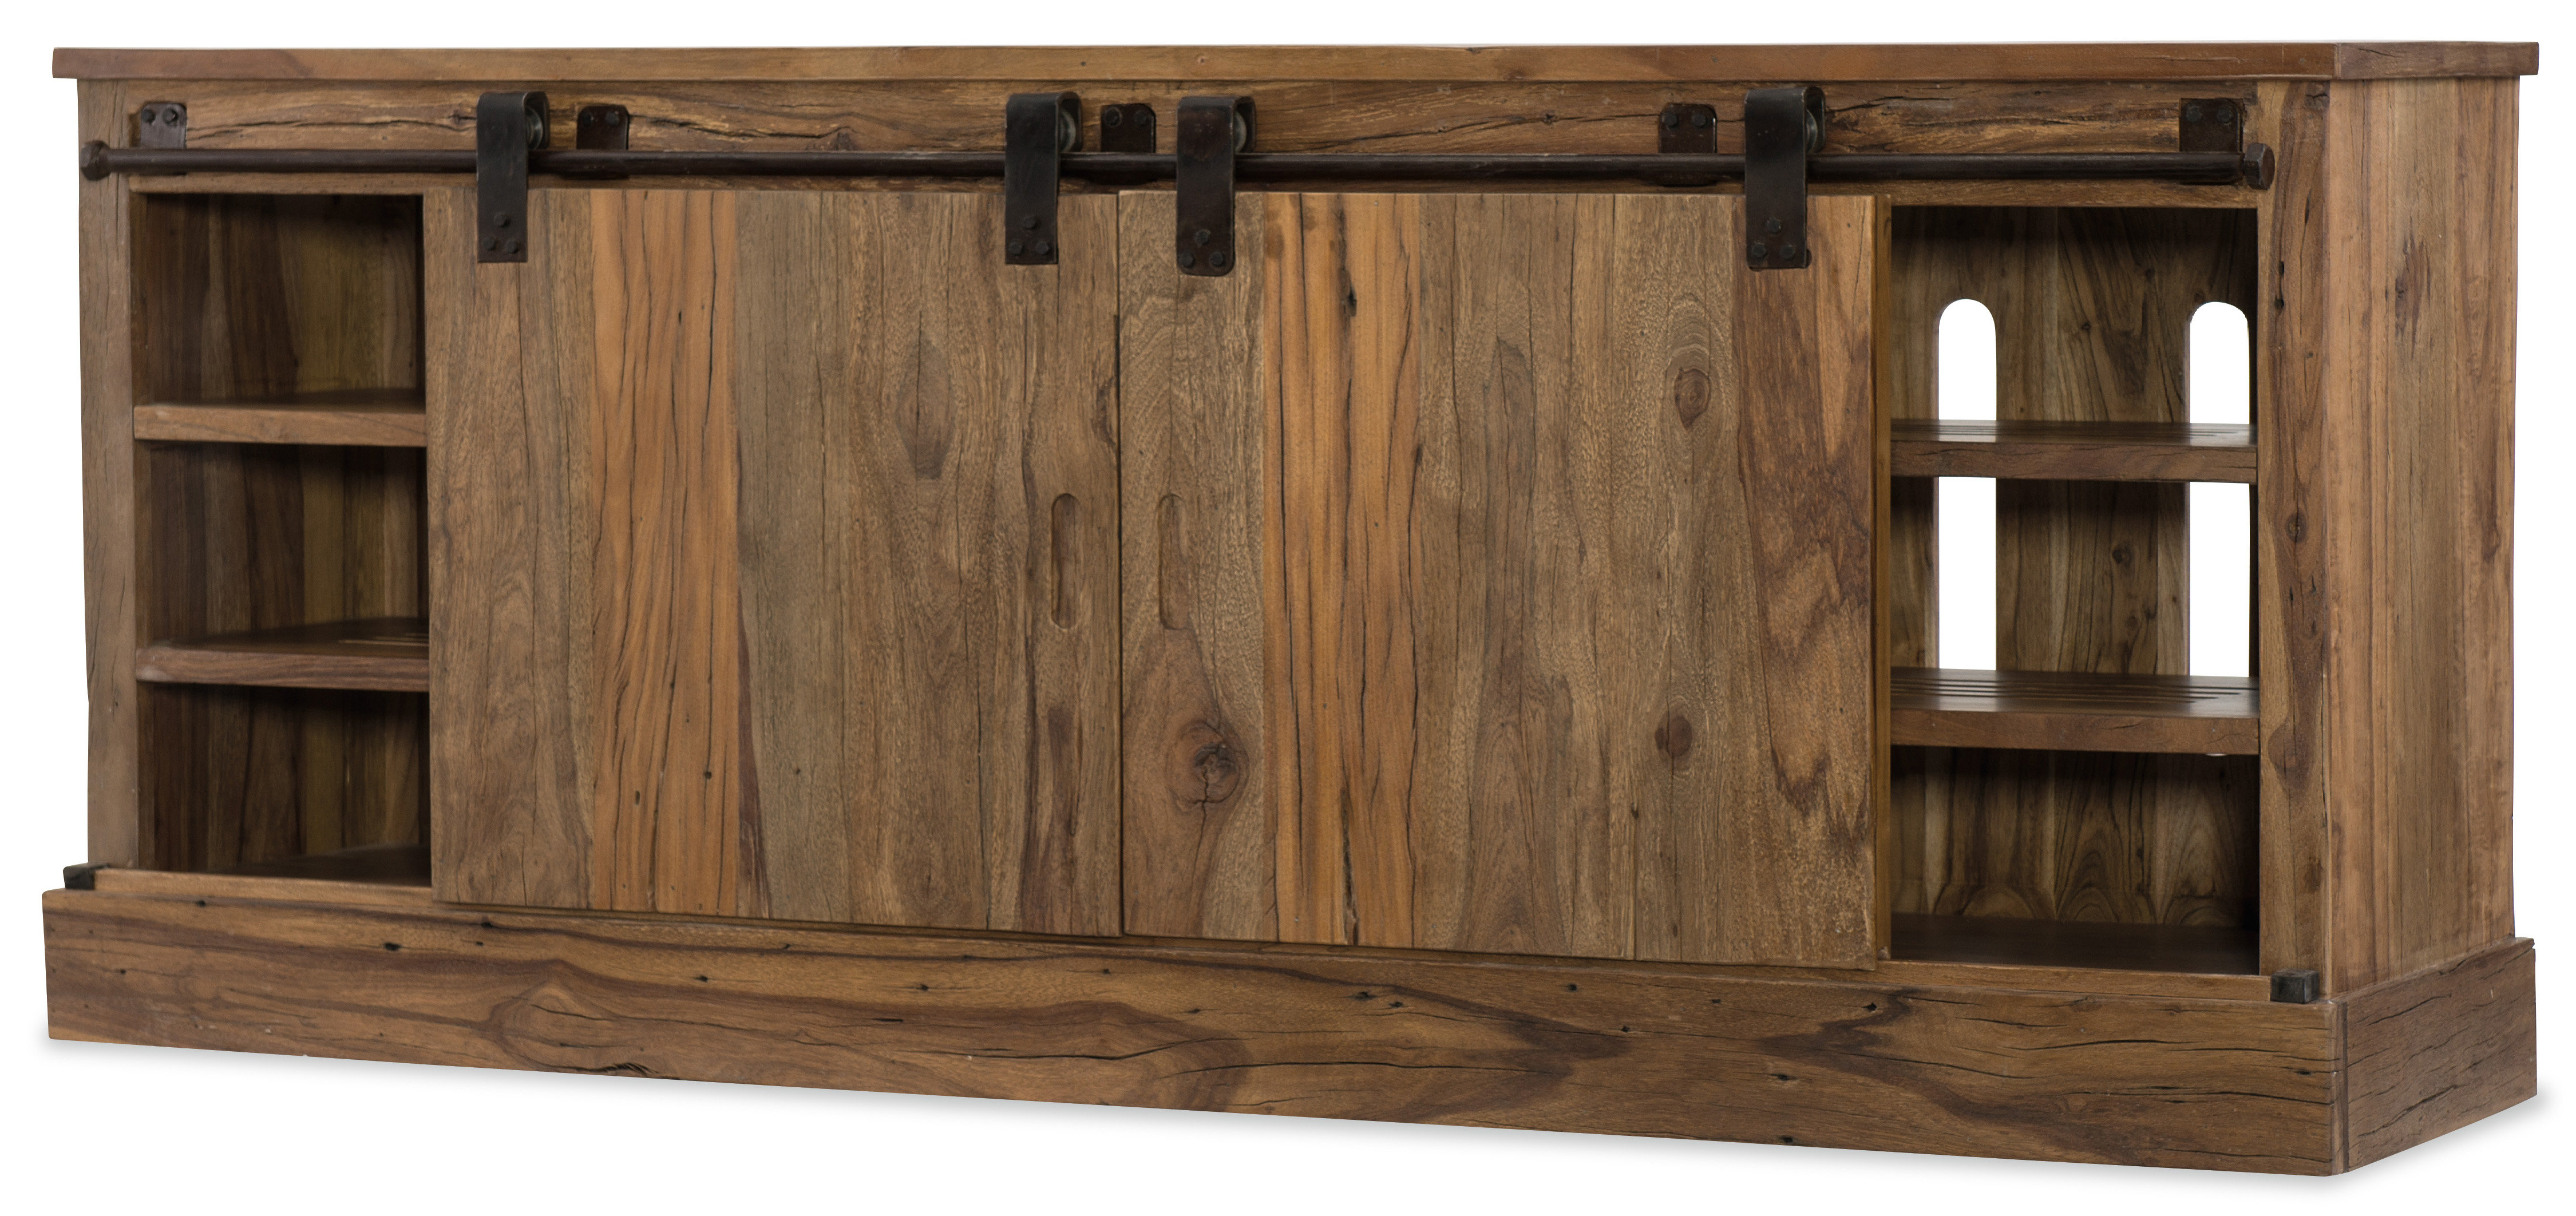 70 Inch Tv Stands | Joss & Main Inside Bale Rustic Grey 82 Inch Tv Stands (View 8 of 20)